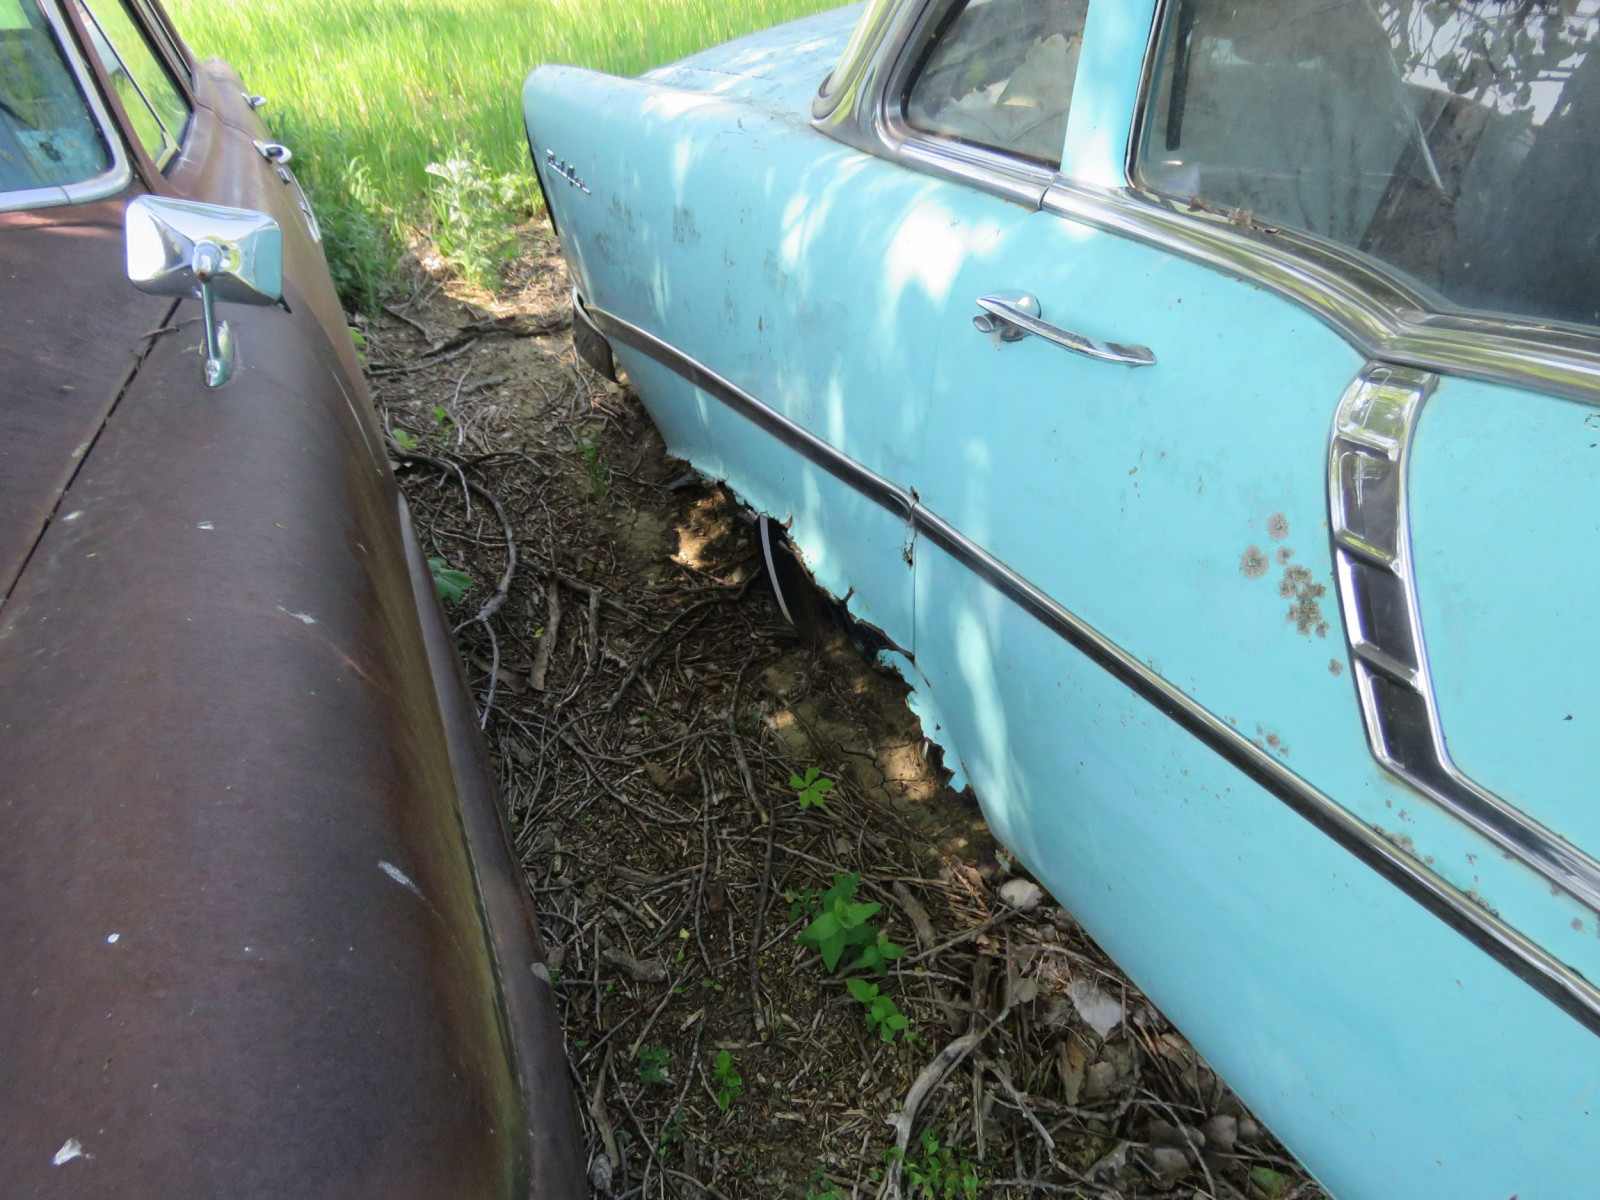 1956 Chevrolet Belair 4dr Sedan for Project or parts VC56J080987 - Image 4